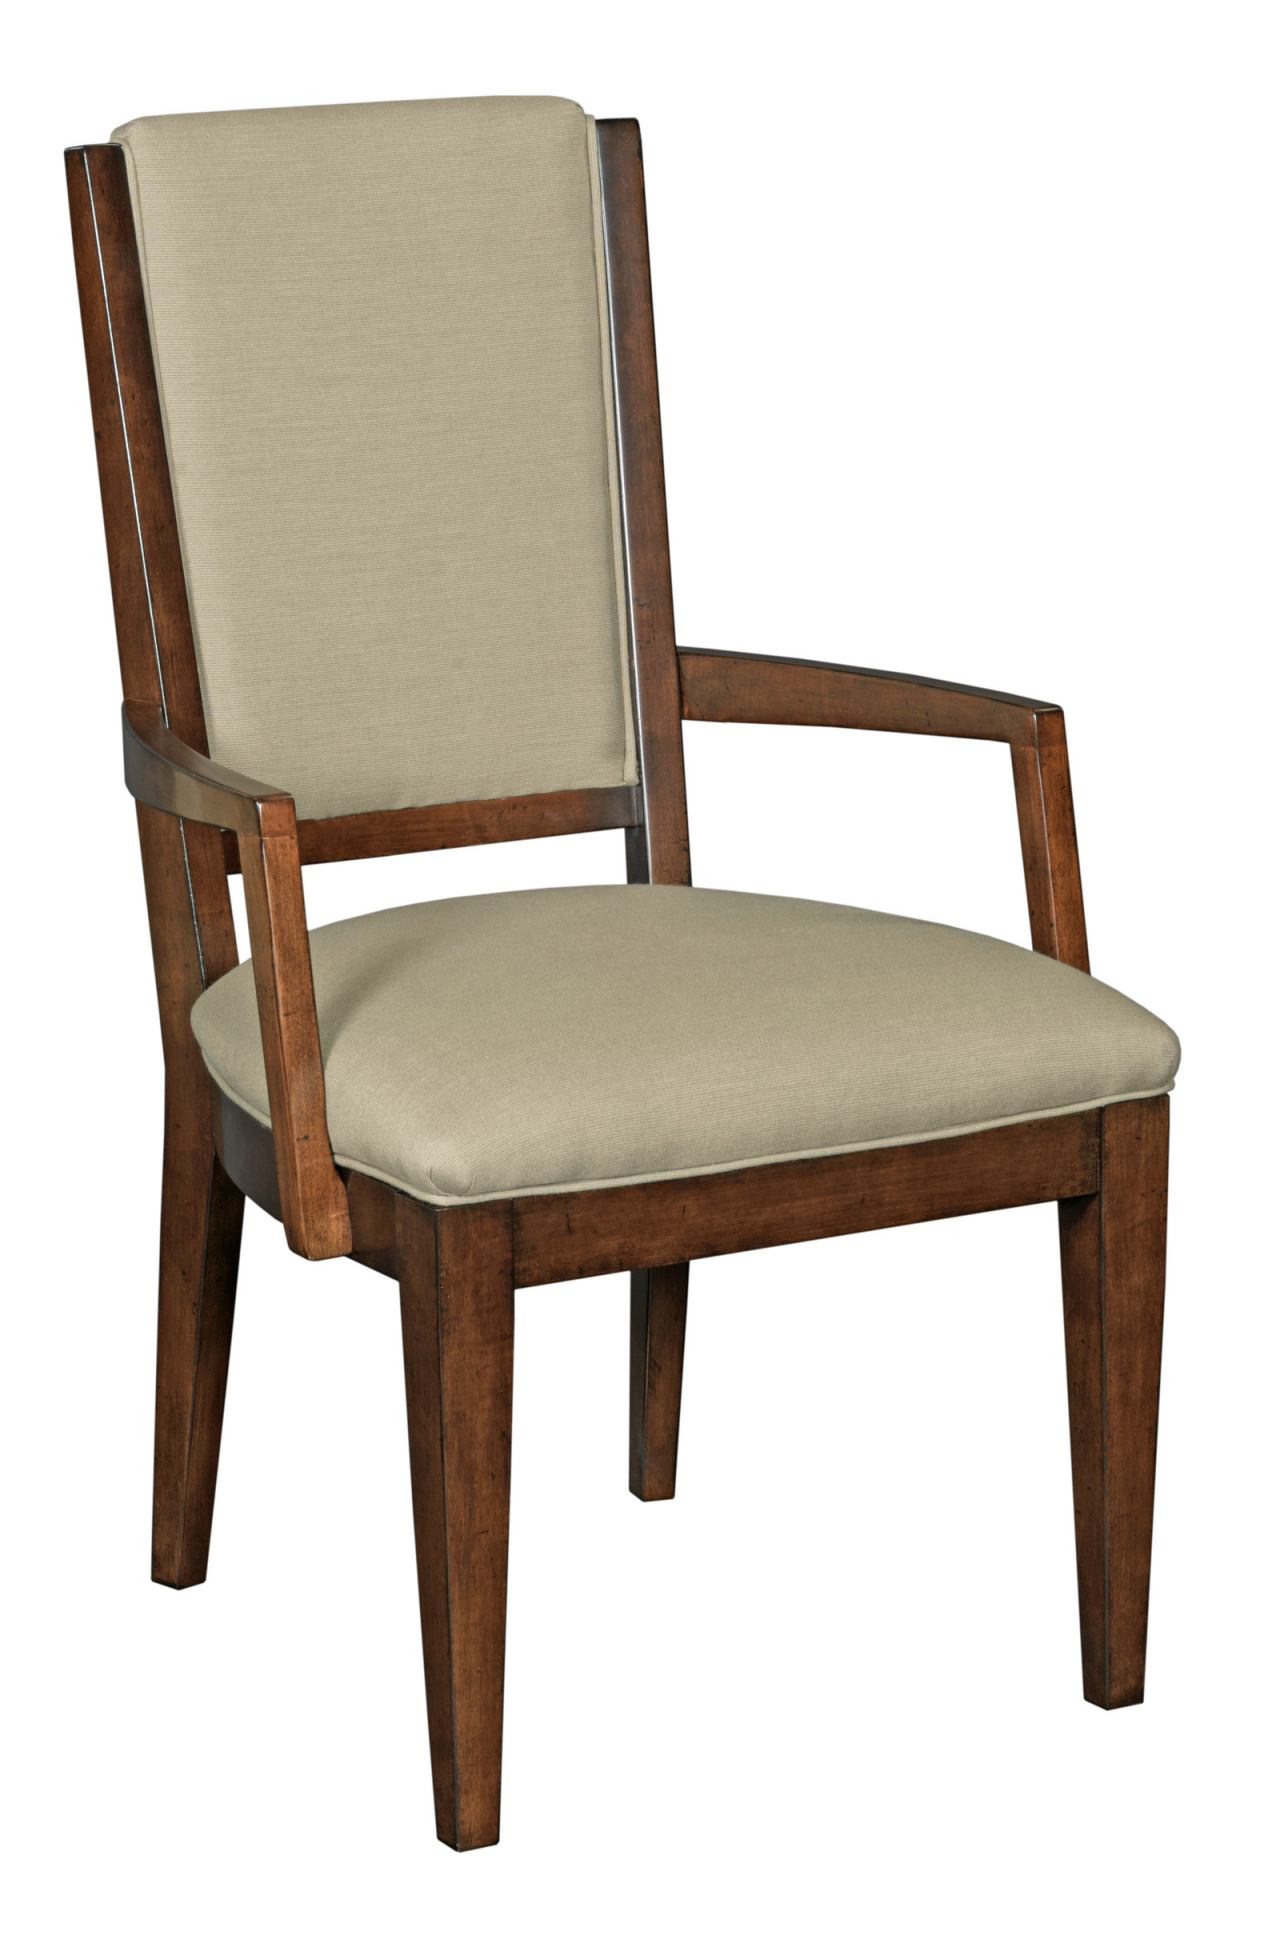 Kincaid Elise Solid Wood Spectrum Arm Chair in Amaretto (Set of 2) 77-062